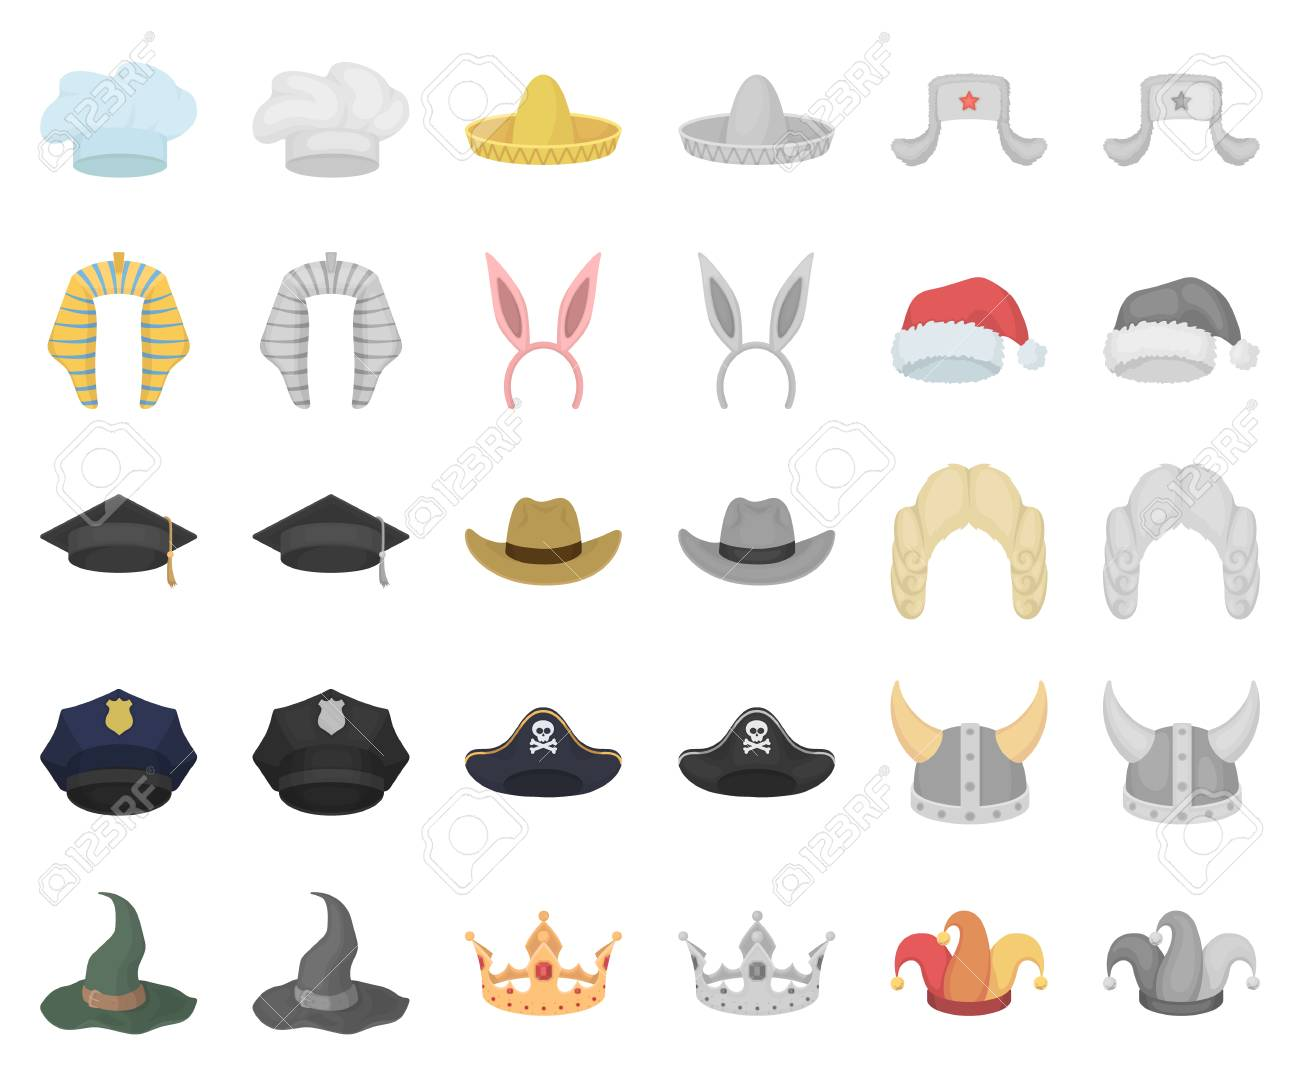 Different Kinds Of Hats Cartoon ea67609ac73f